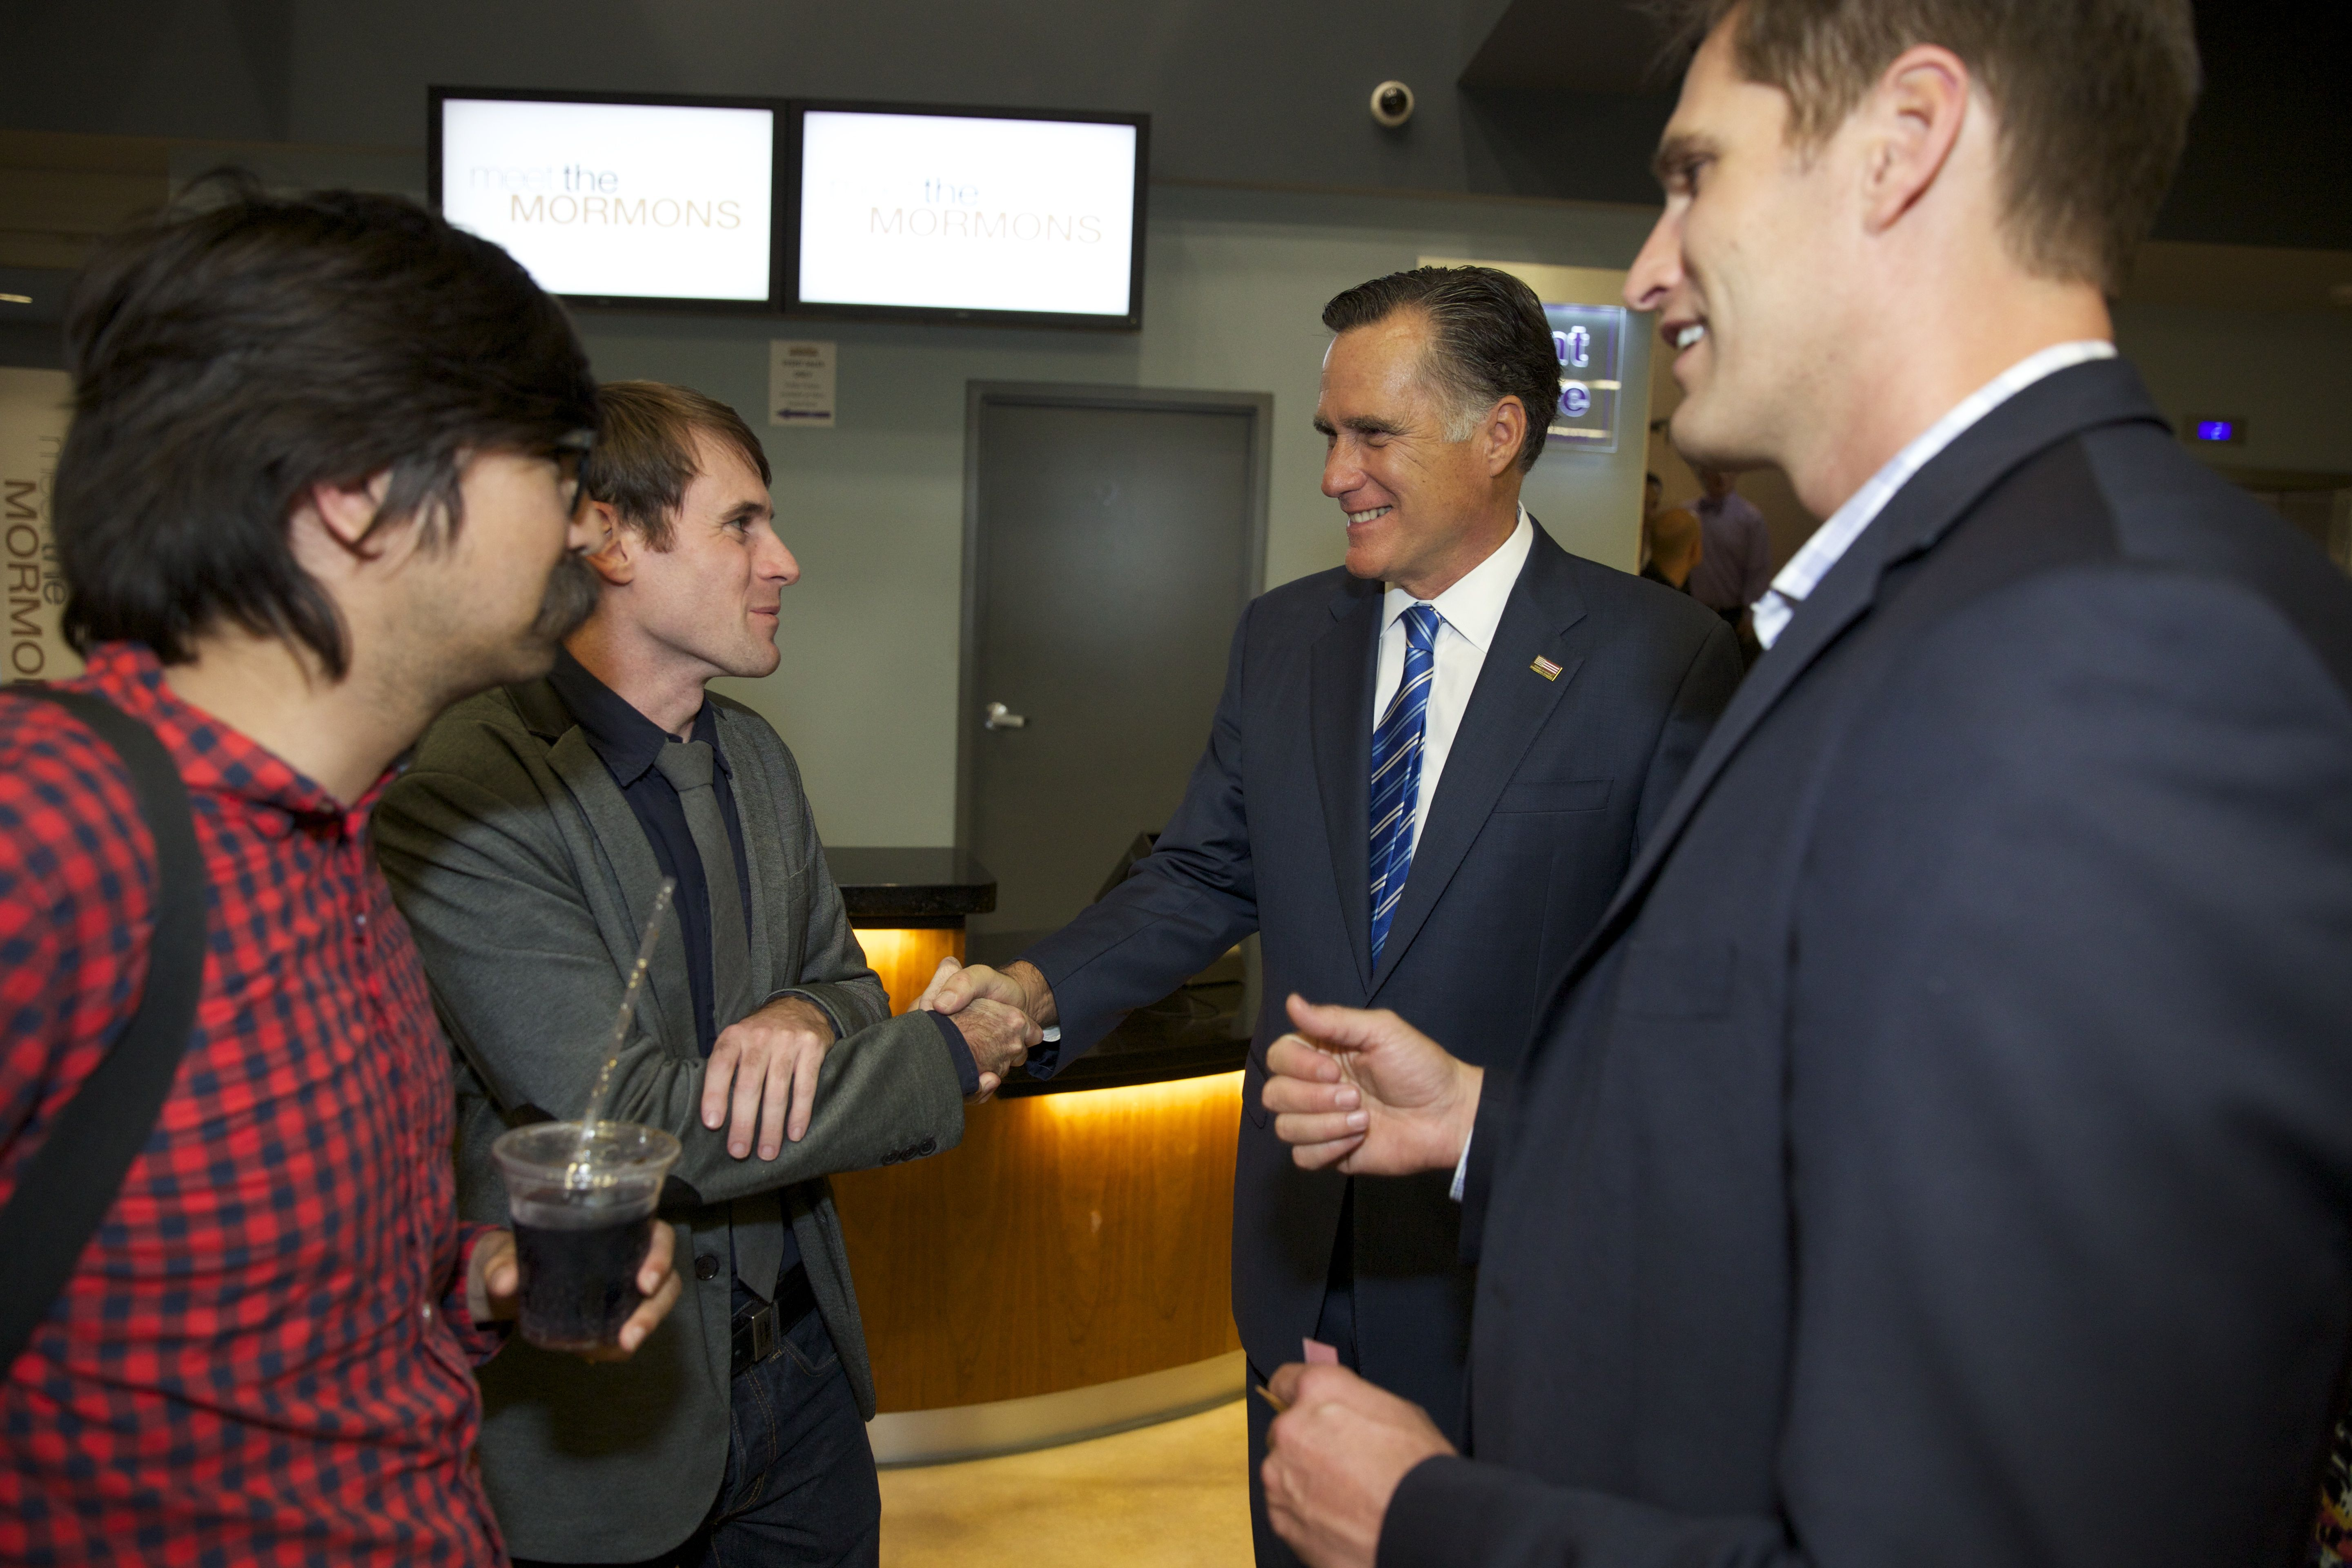 Mitt Romney and Matt Meese from @BYUtv's Studio C hanging out at the #MeetTheMormons movie premiere! Learn more at meetthemormons.com